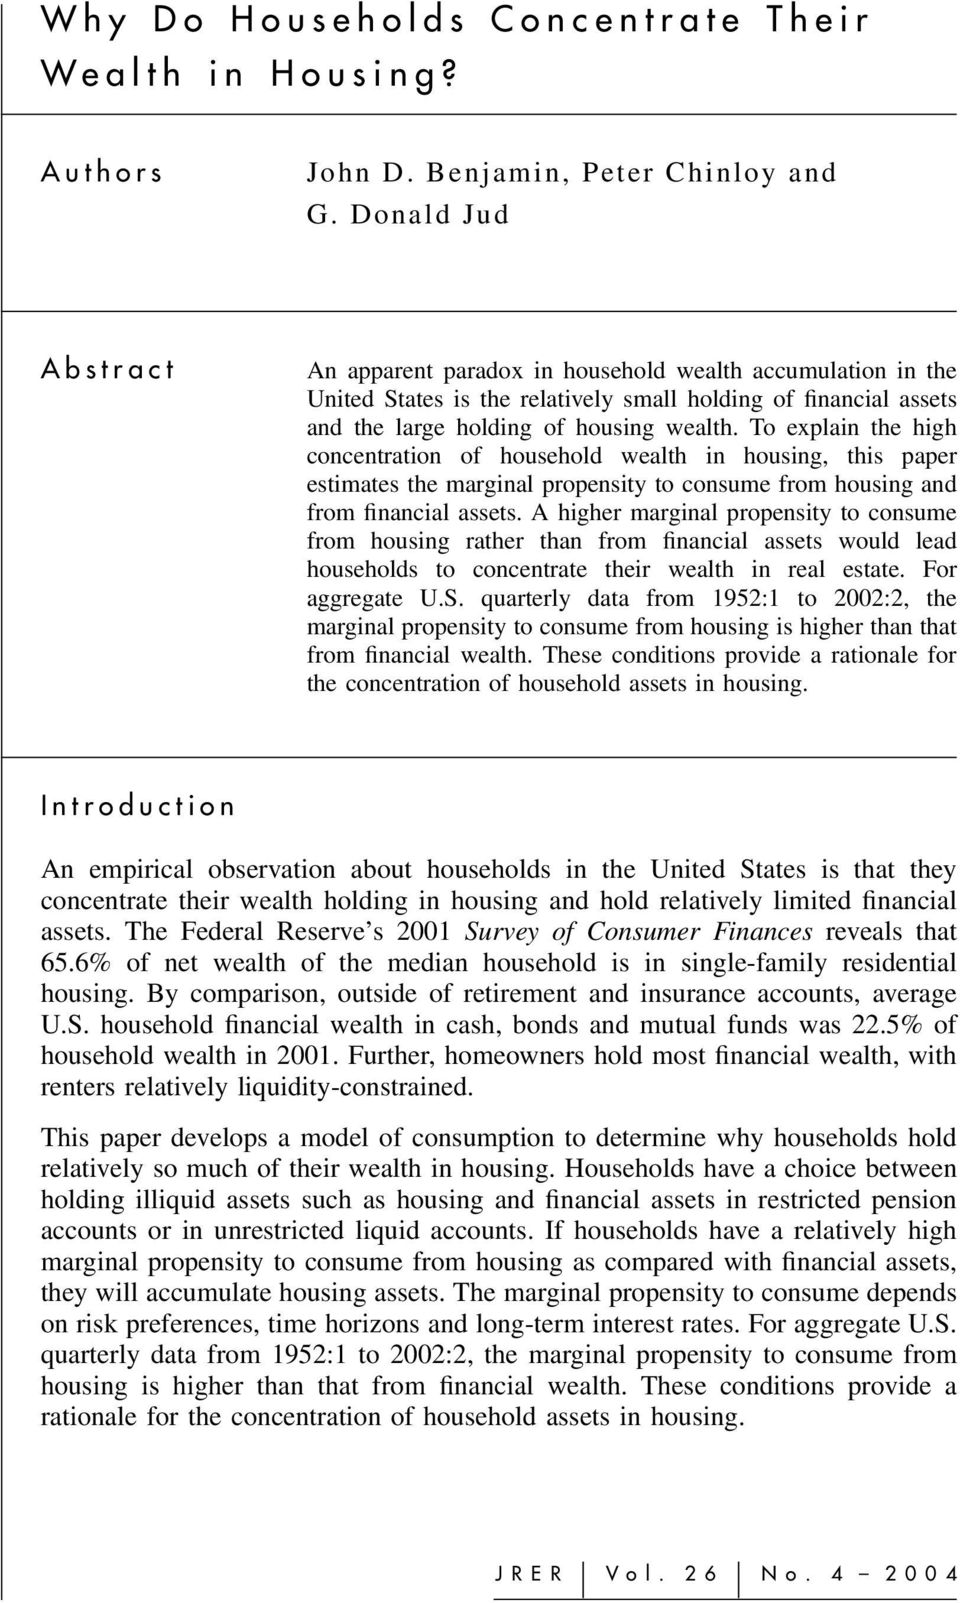 To explain the high concentration of household wealth in housing, this paper estimates the marginal propensity to consume from housing and from financial assets.